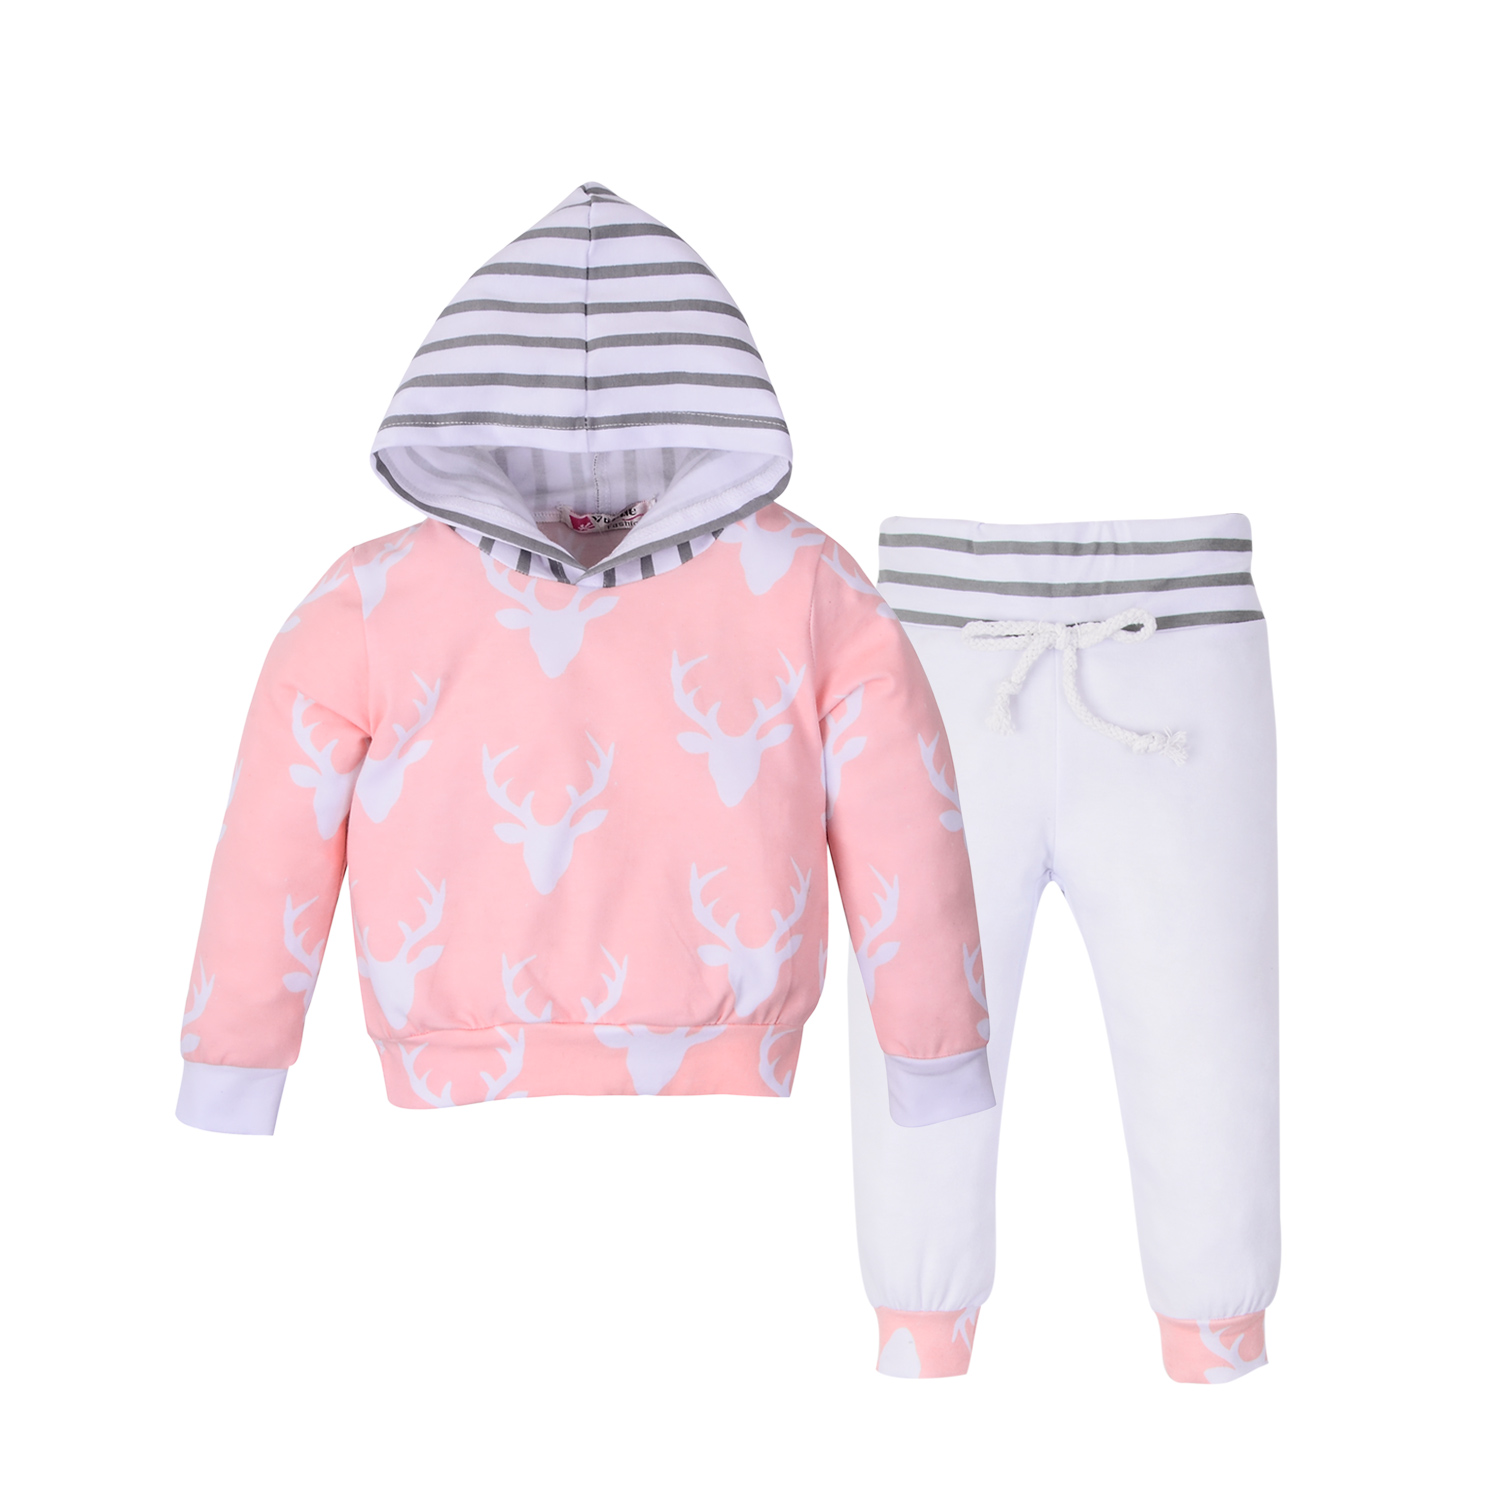 2-piece Cute Reindeer and Stripes Long-sleeve Hooded Shirt and Pants for Toddler Girl